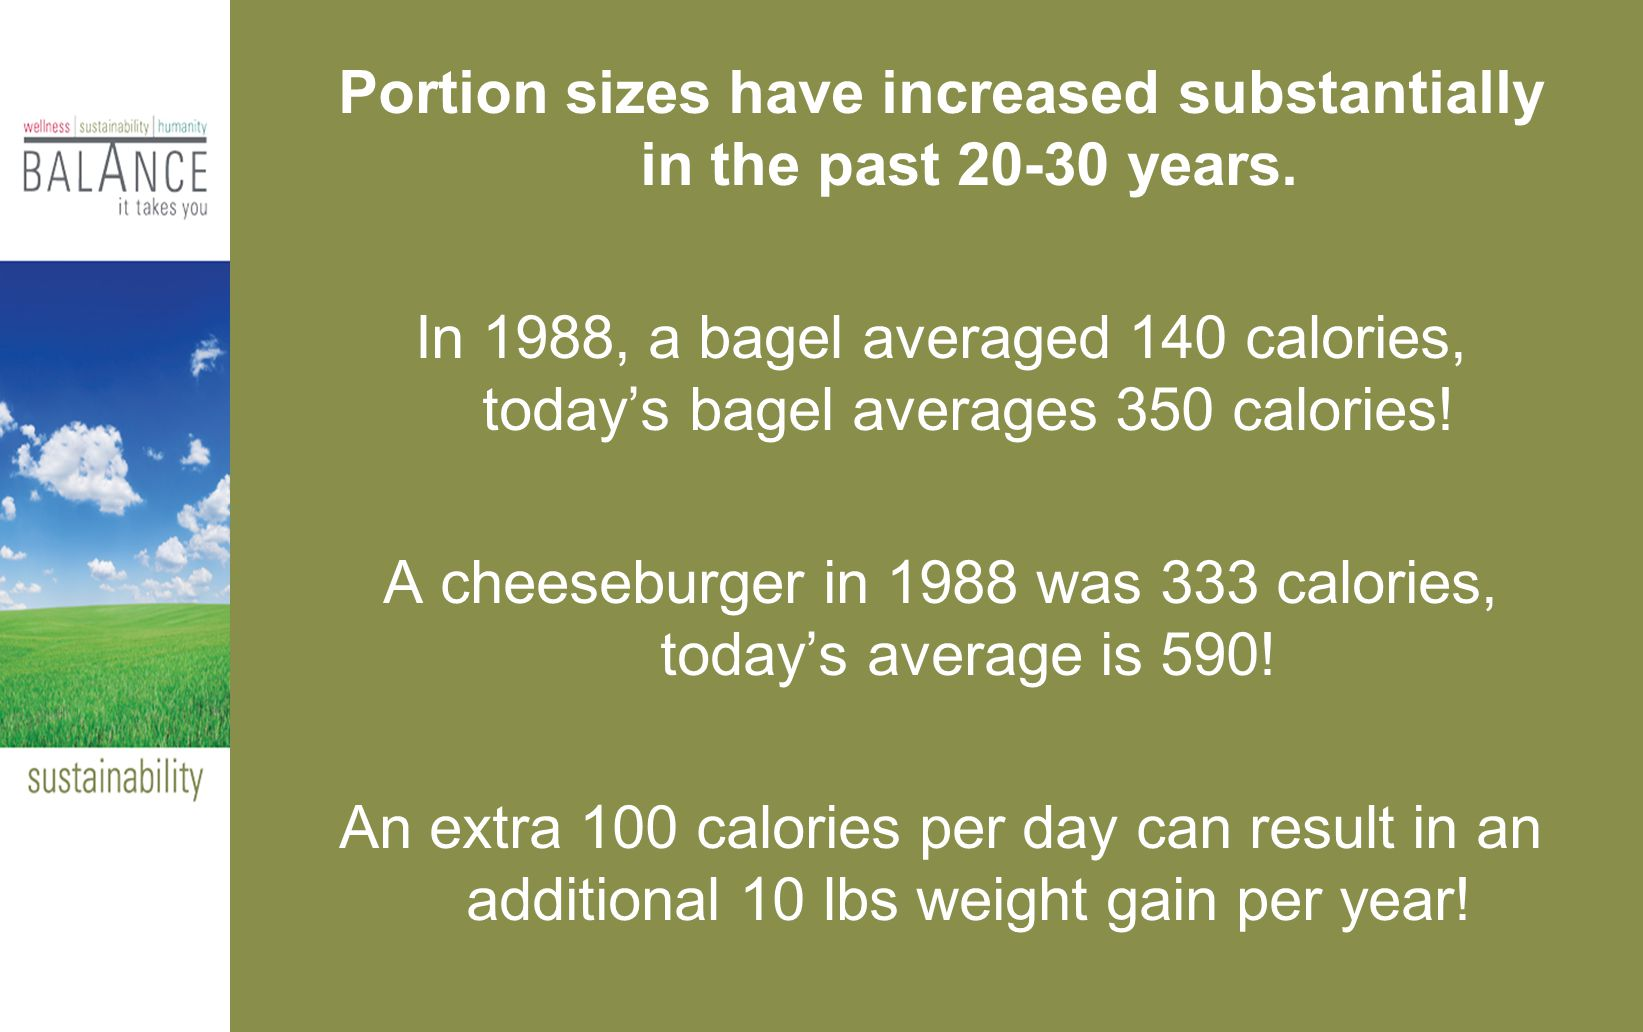 Portion sizes have increased substantially in the past 20-30 years.